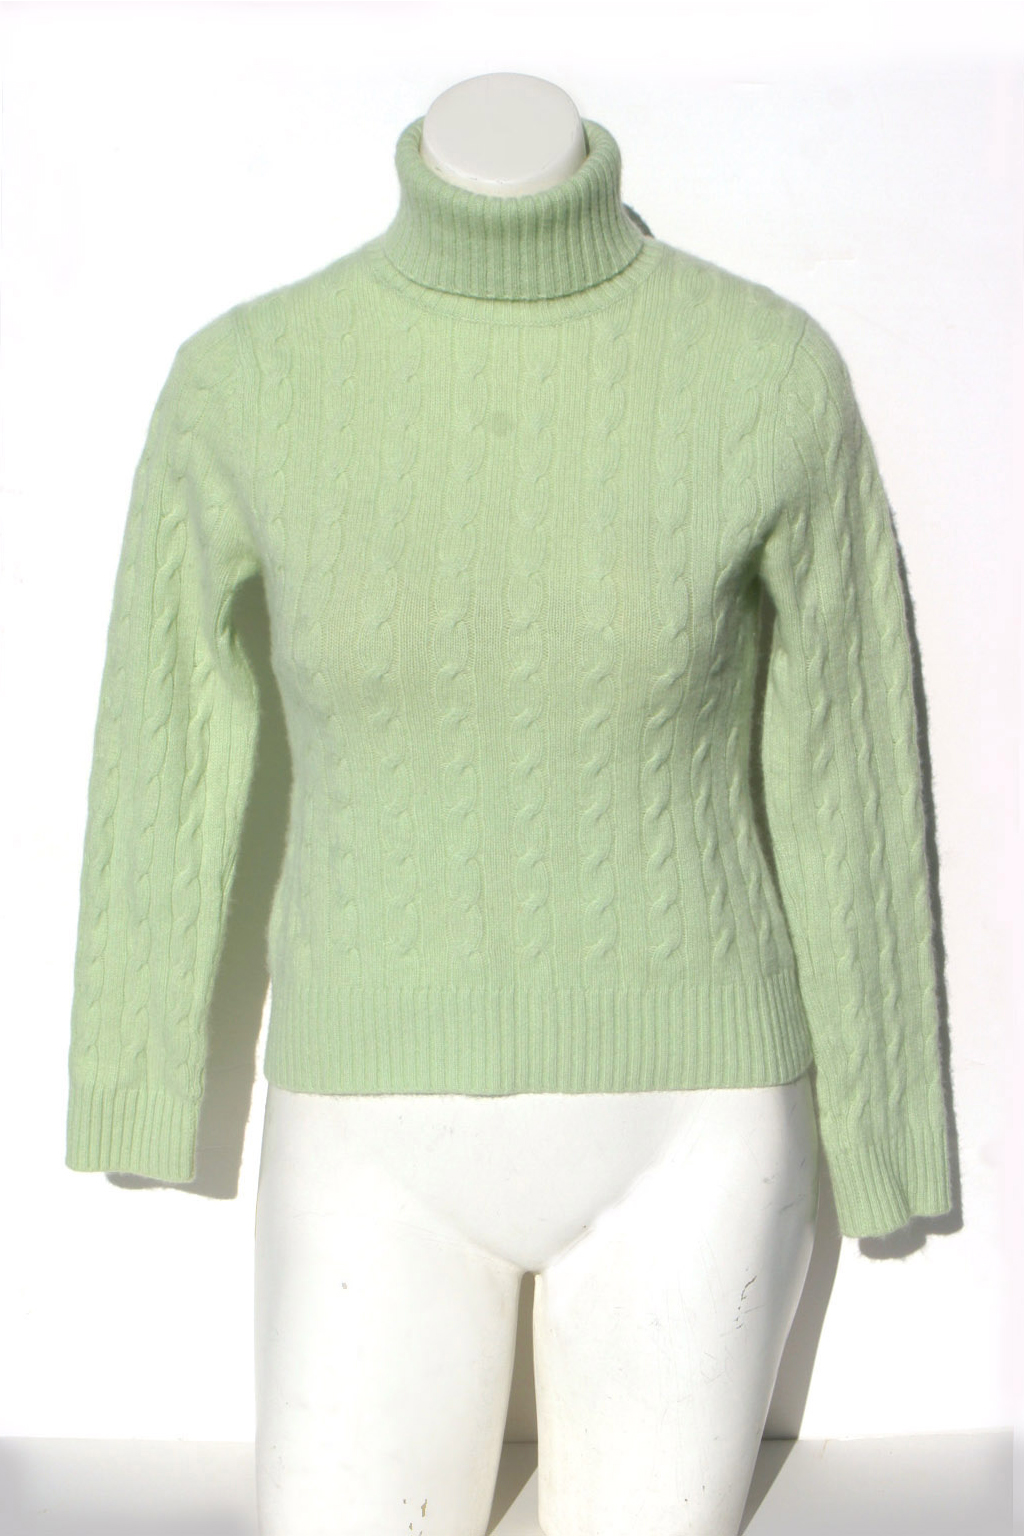 Thrift Shop Sweater Second Hand L Brand Womens Medium Cable Knit Green Turtleneck Cashmere